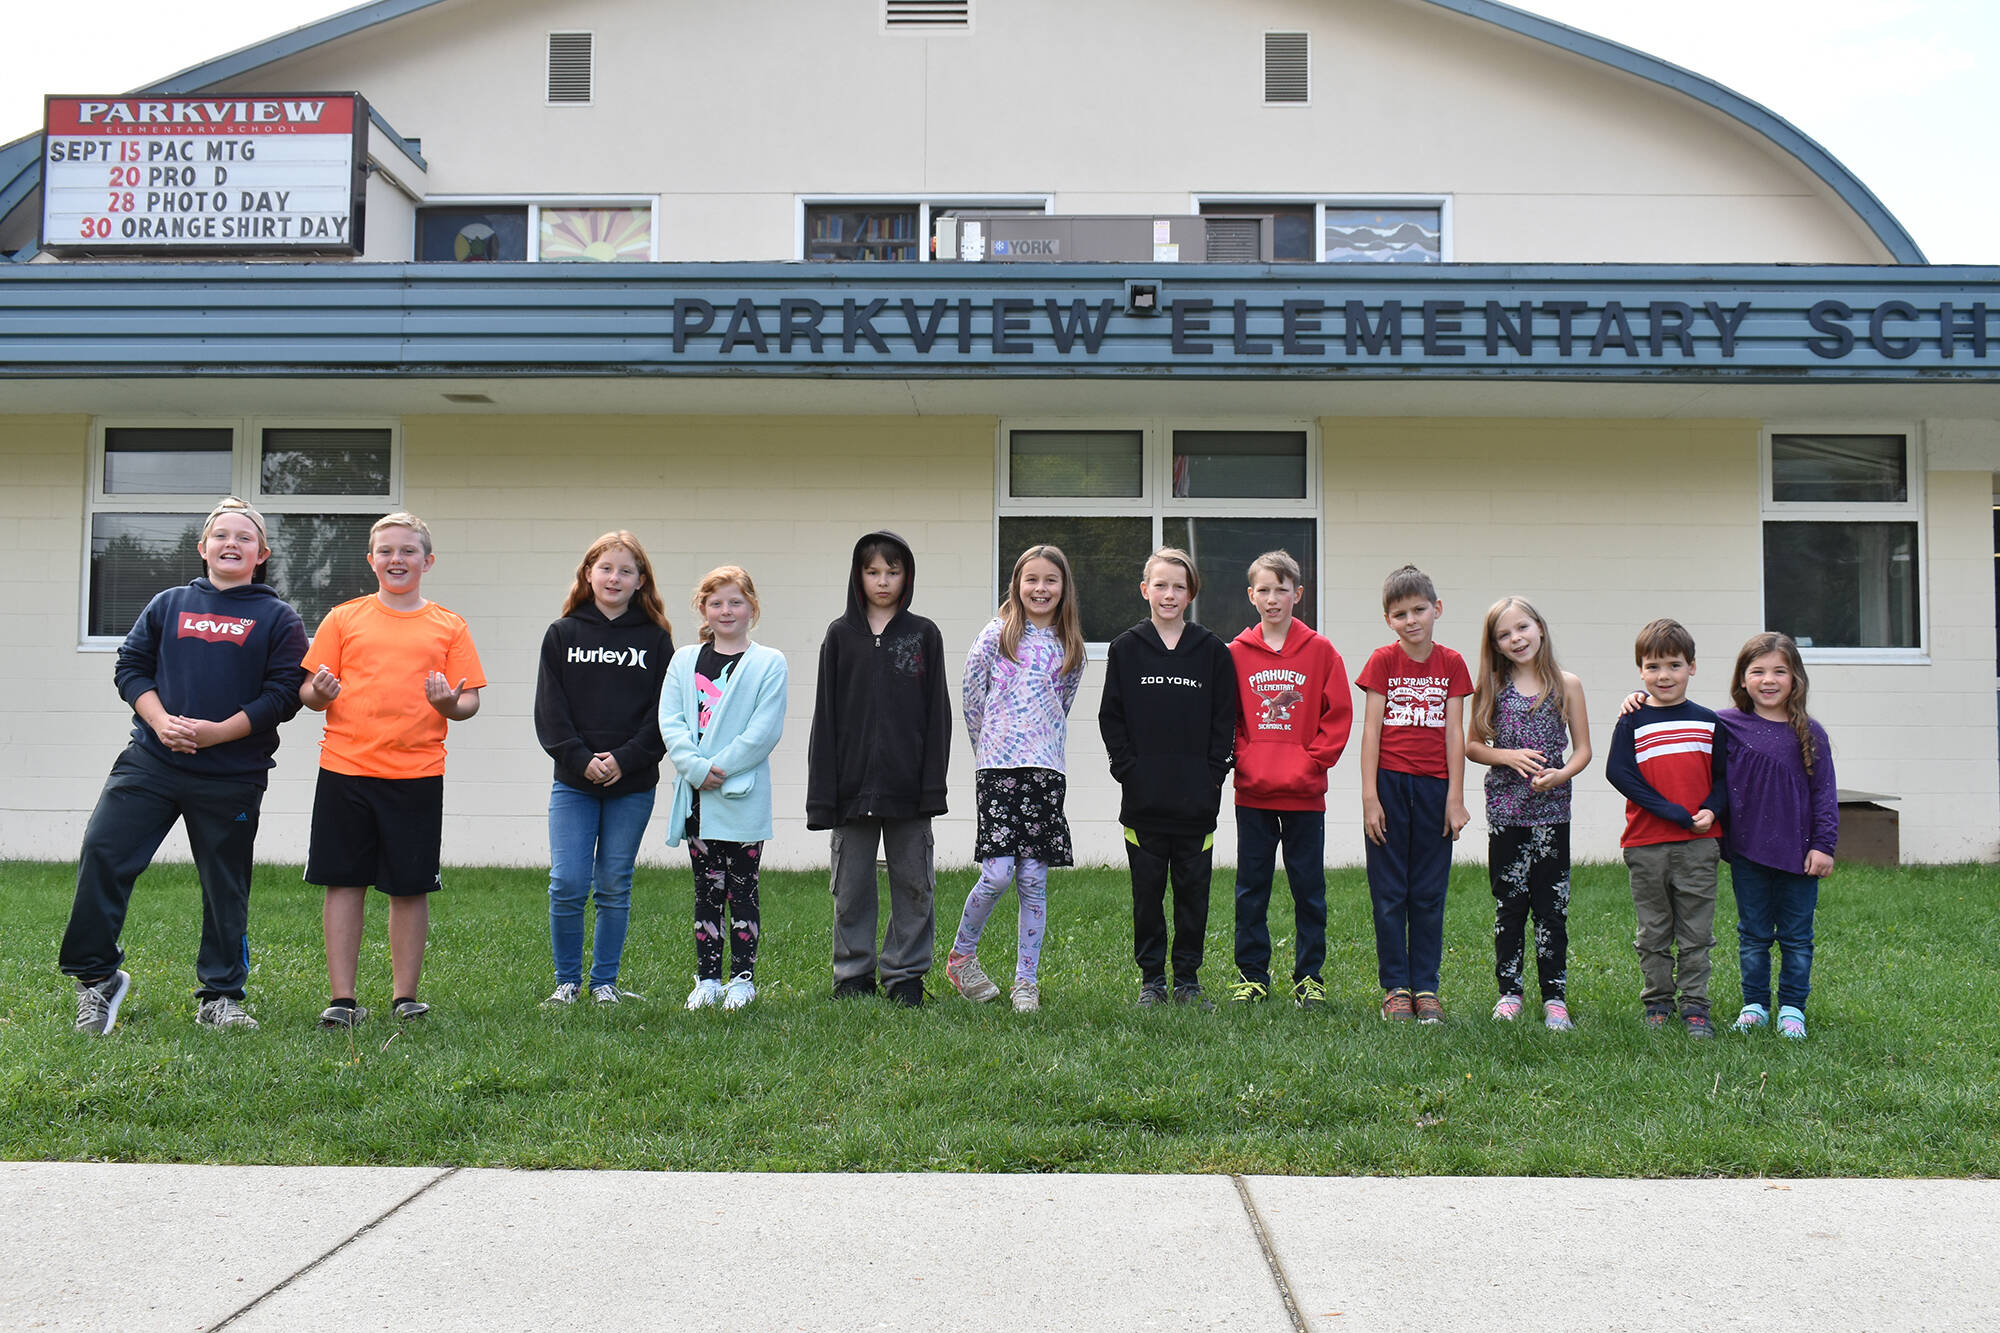 Six sets of twins are attending Parkview Elementary School in Sicamous for the 2021-22 school year. From left to right, their names are: Levi and Cody Clark, Kate and Reese Osmundson, Maxx and Maycie-Jean Lane, Dustin and Dillon Hilder, Emily and Nathan Presley, and Aurora and Logan Dawson. (Zachary Roman/Eagle Valley News)